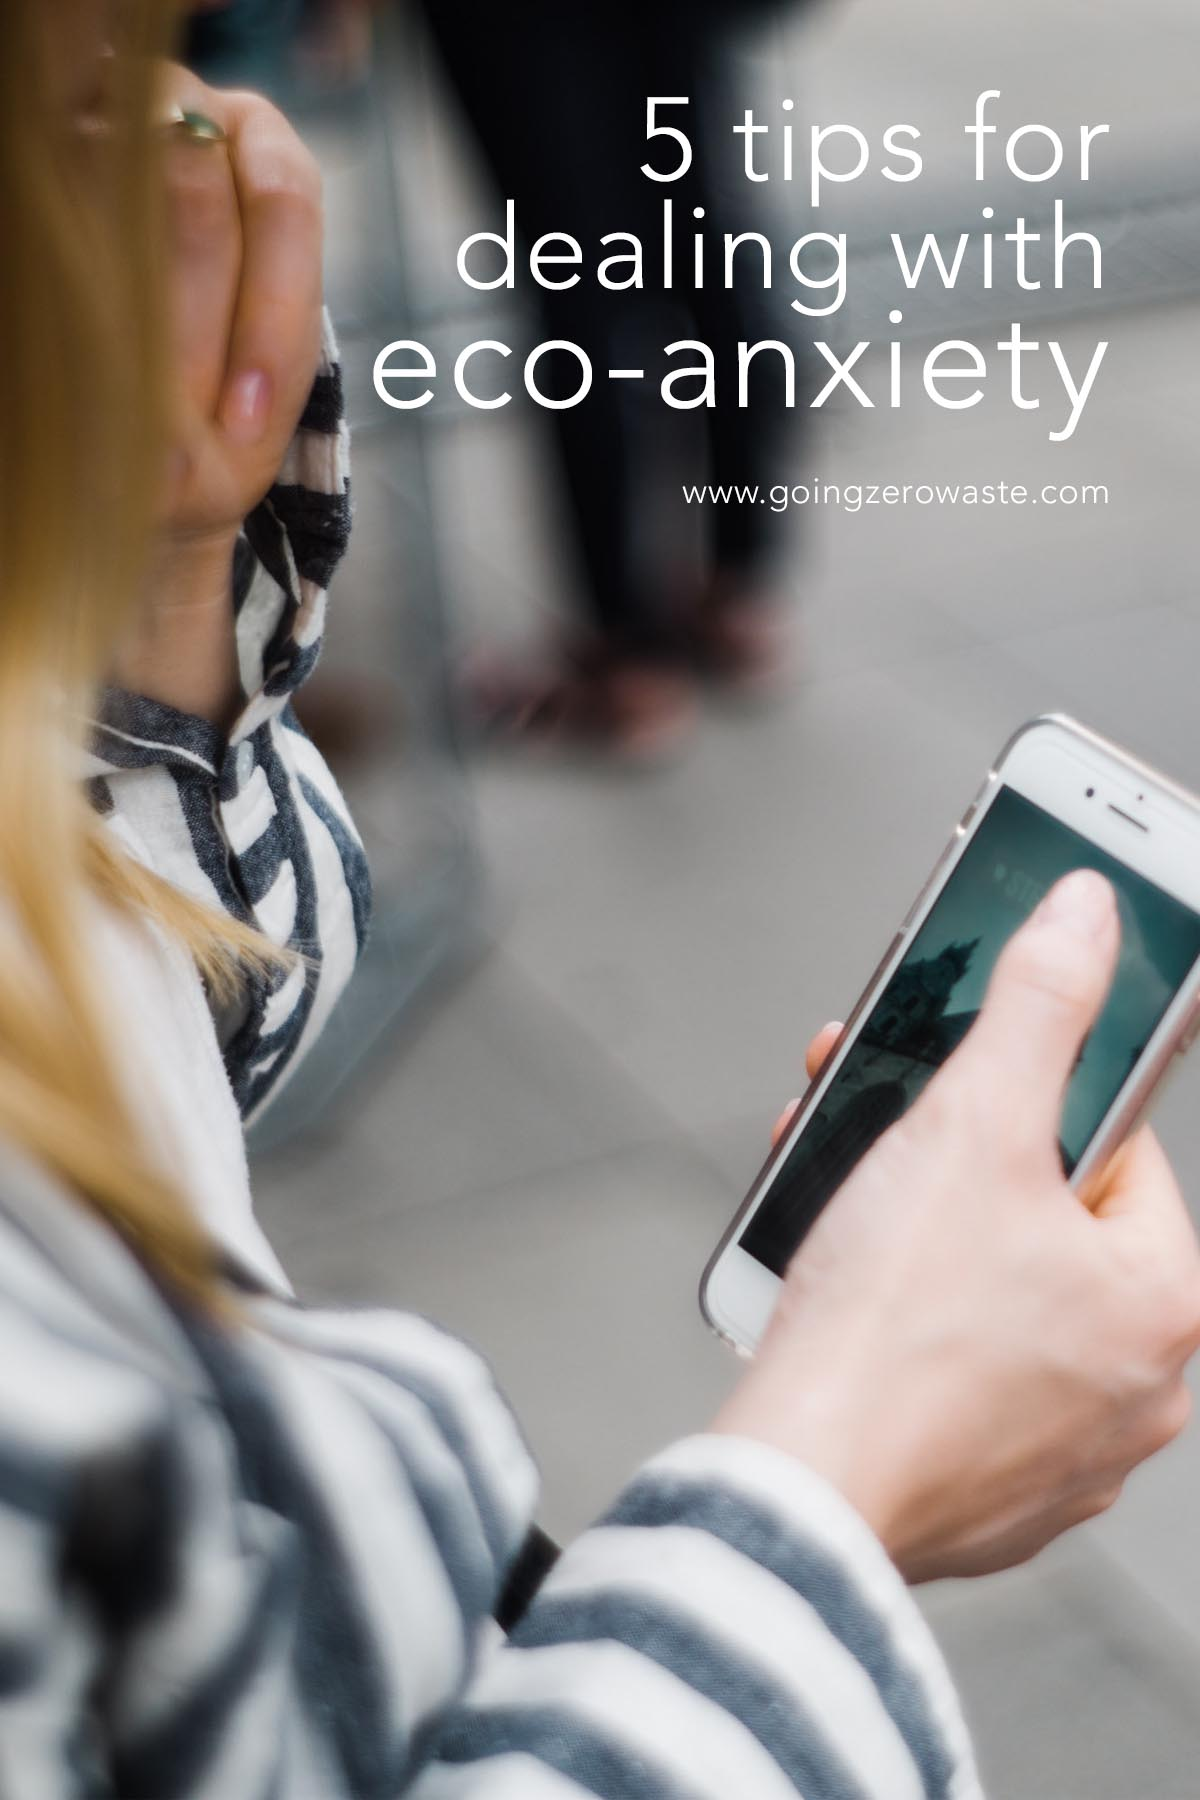 5 Tips for dealing with eco-anxiety from www.goingzerowaste.com #eco #zerowaste #sustainable #anxiety #ecoanxiety